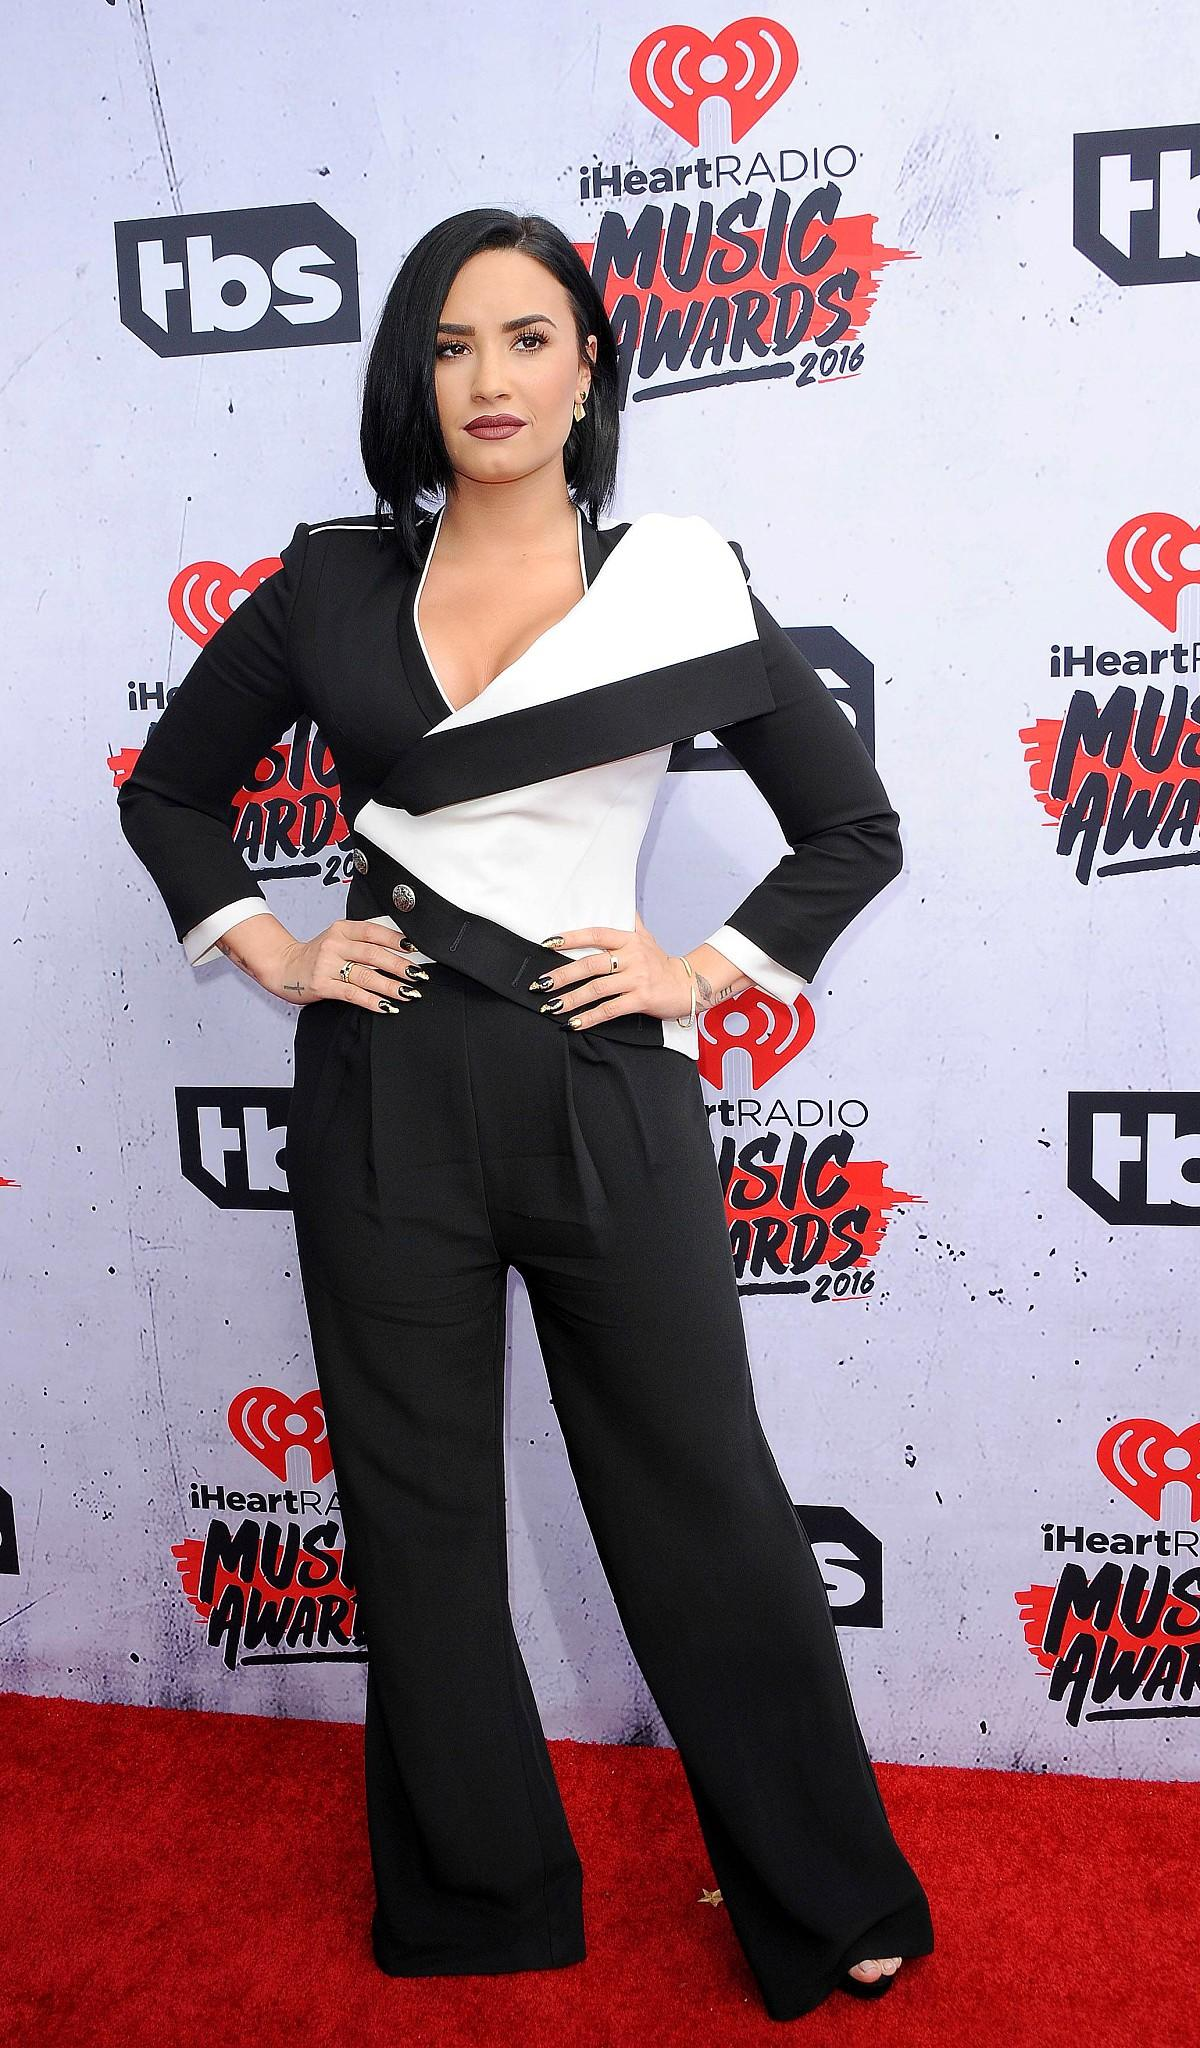 IheartRadio Awards 2016